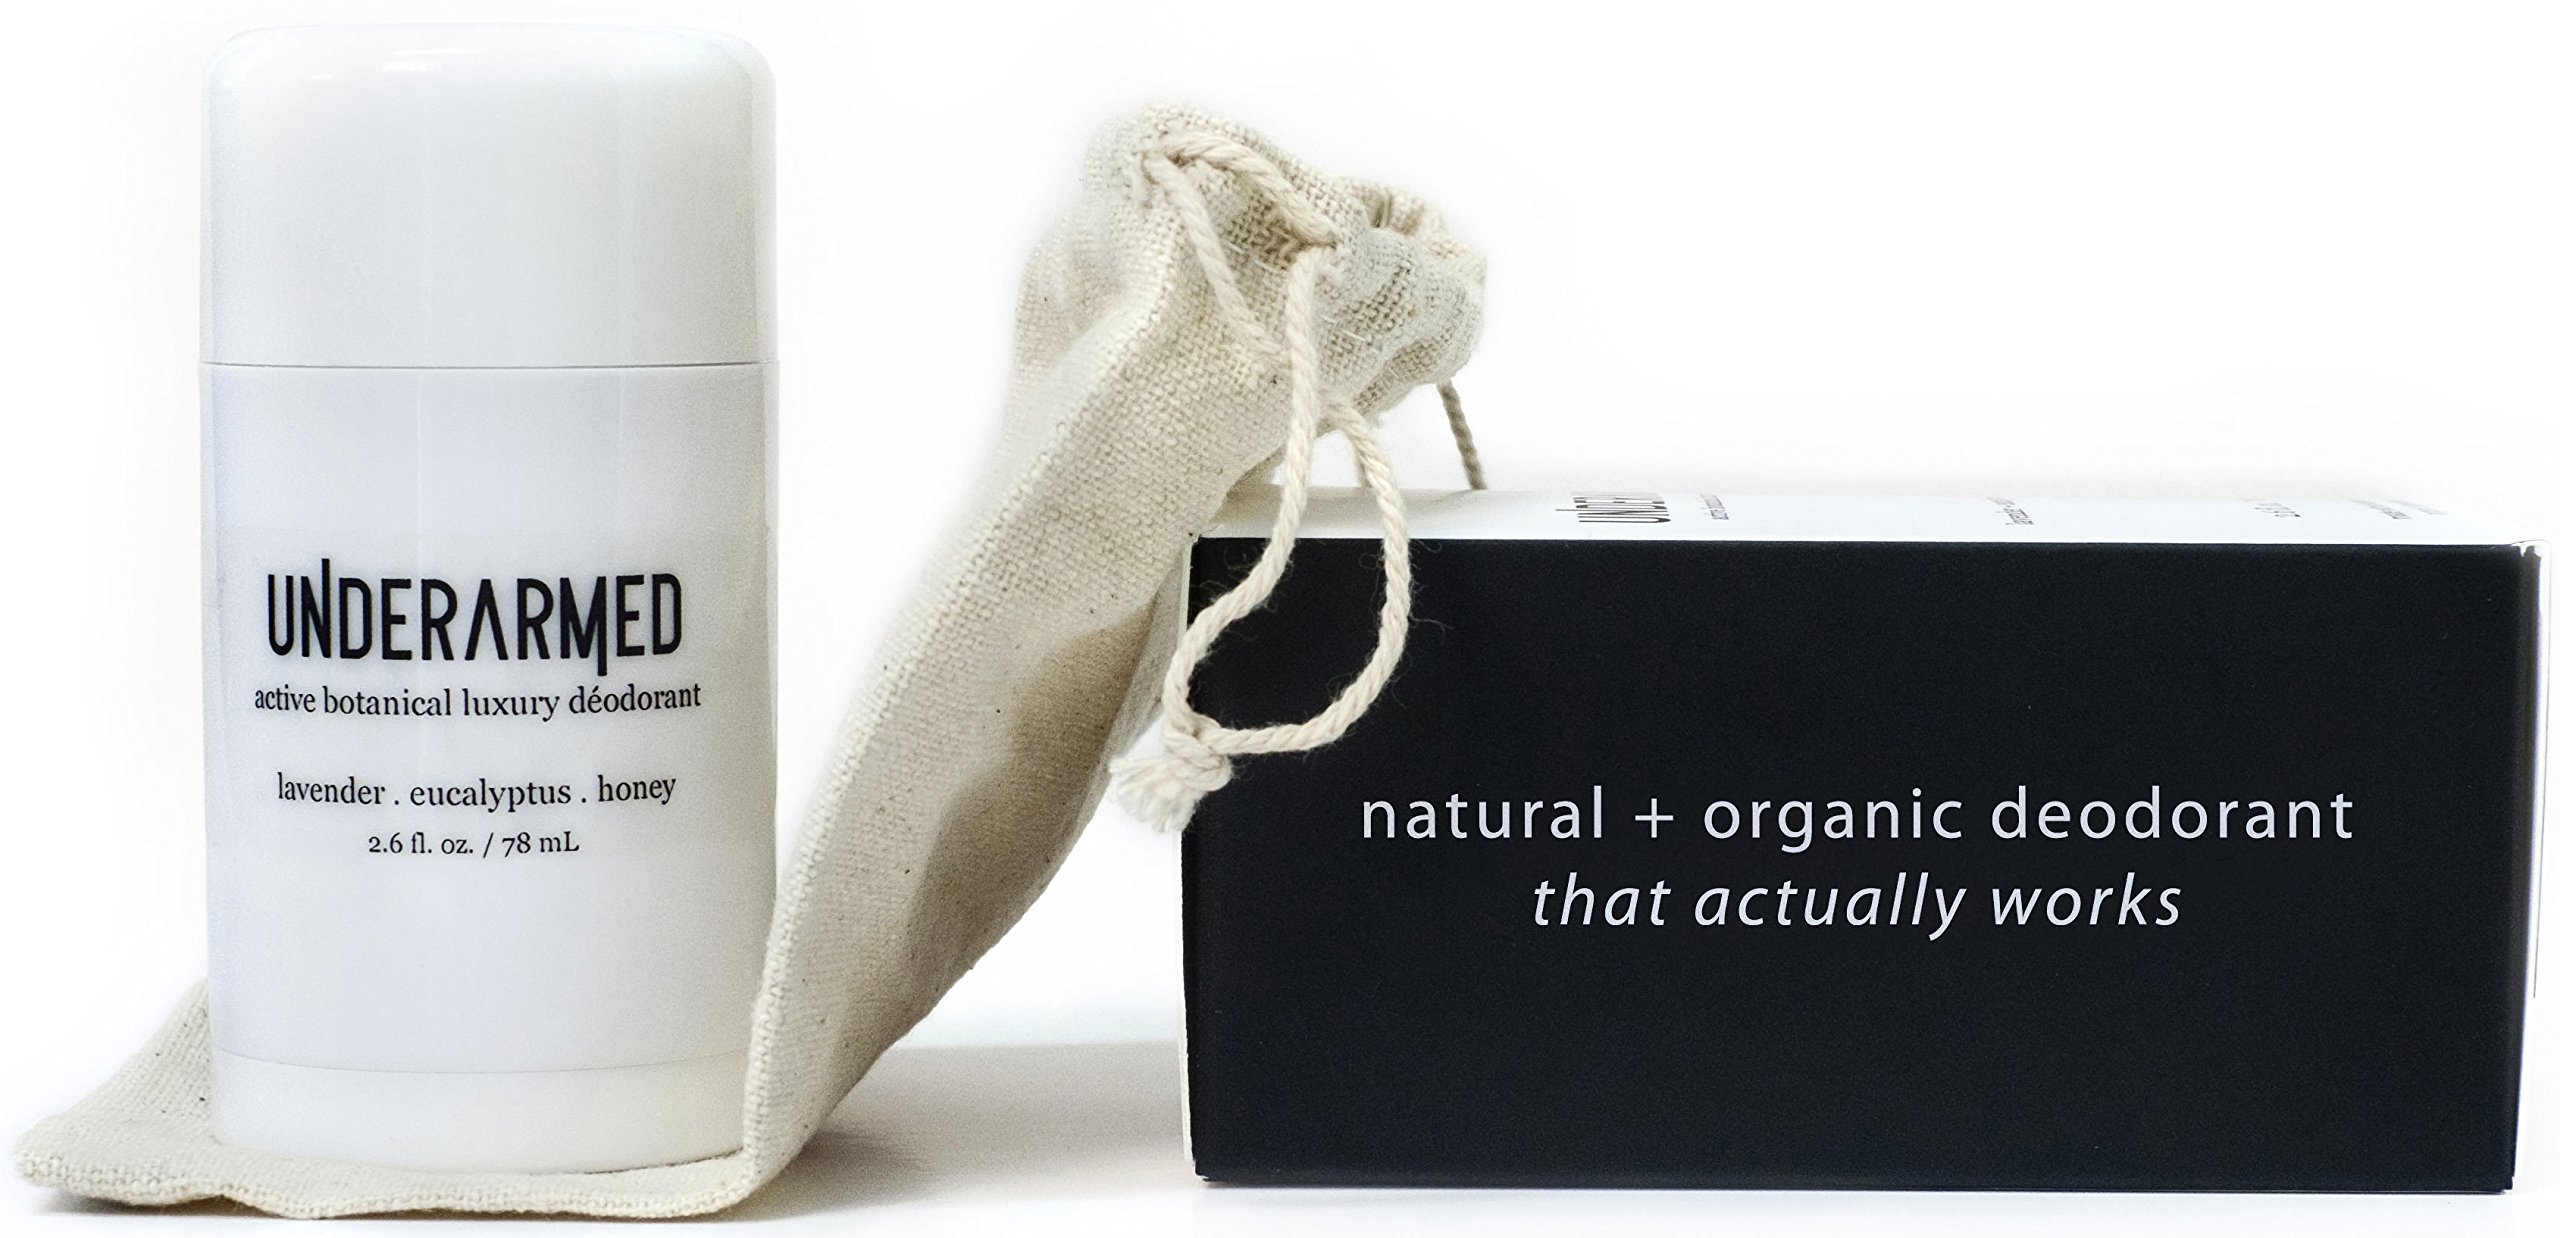 Natural Aluminum Free Deodorant Stick (that works!) Stay Fresh All Day - Underarmed For Women & Men - Organic, Healthy, Safe, Non Toxic - Phthalate, Paraben, Gluten & Cruelty Free